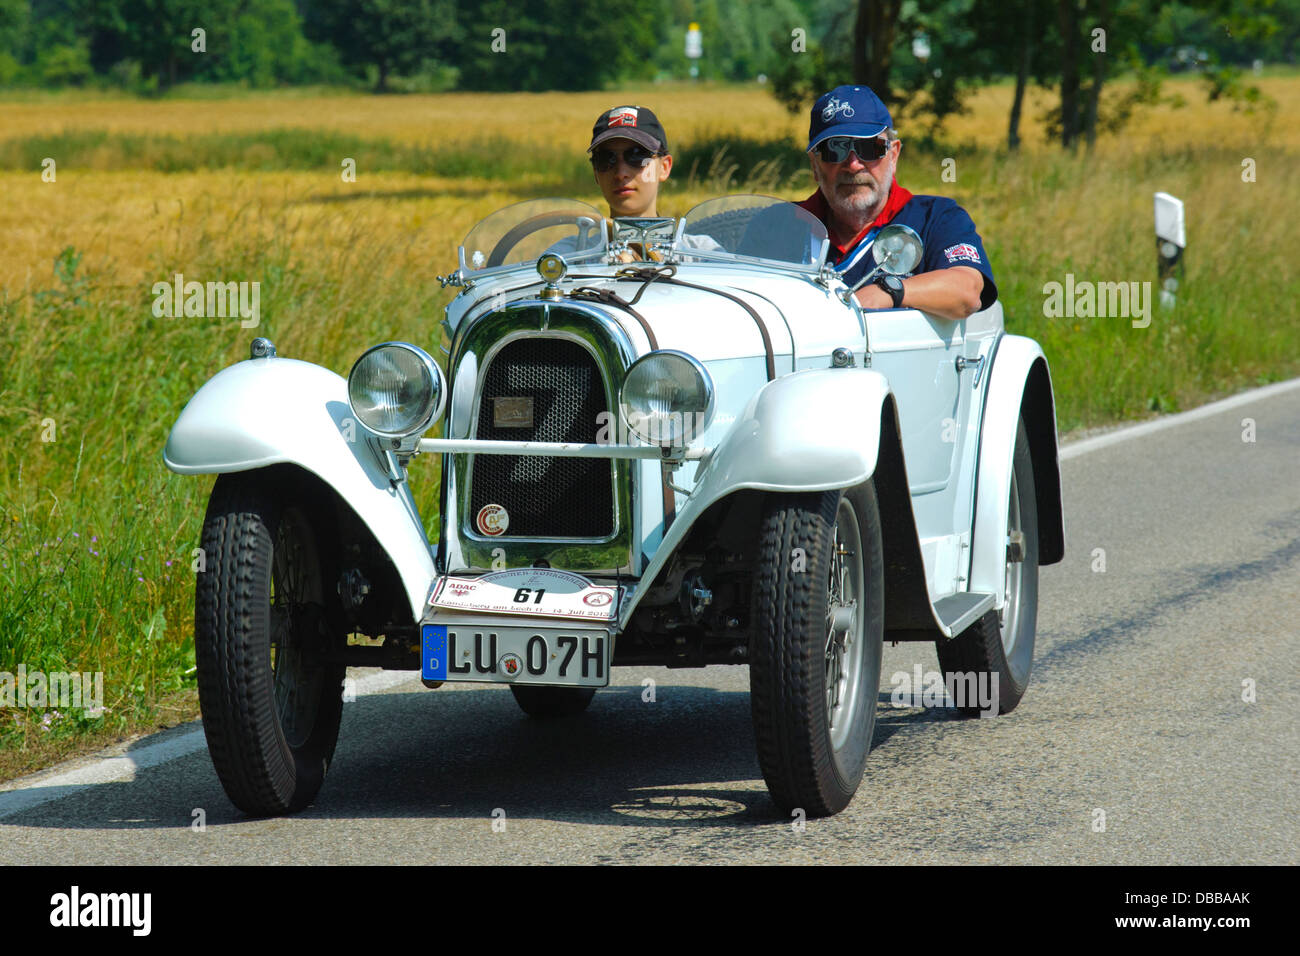 Oldtimer rallye for at least 80 years old antique cars with Aero 10, built at year 1929 - Stock Image